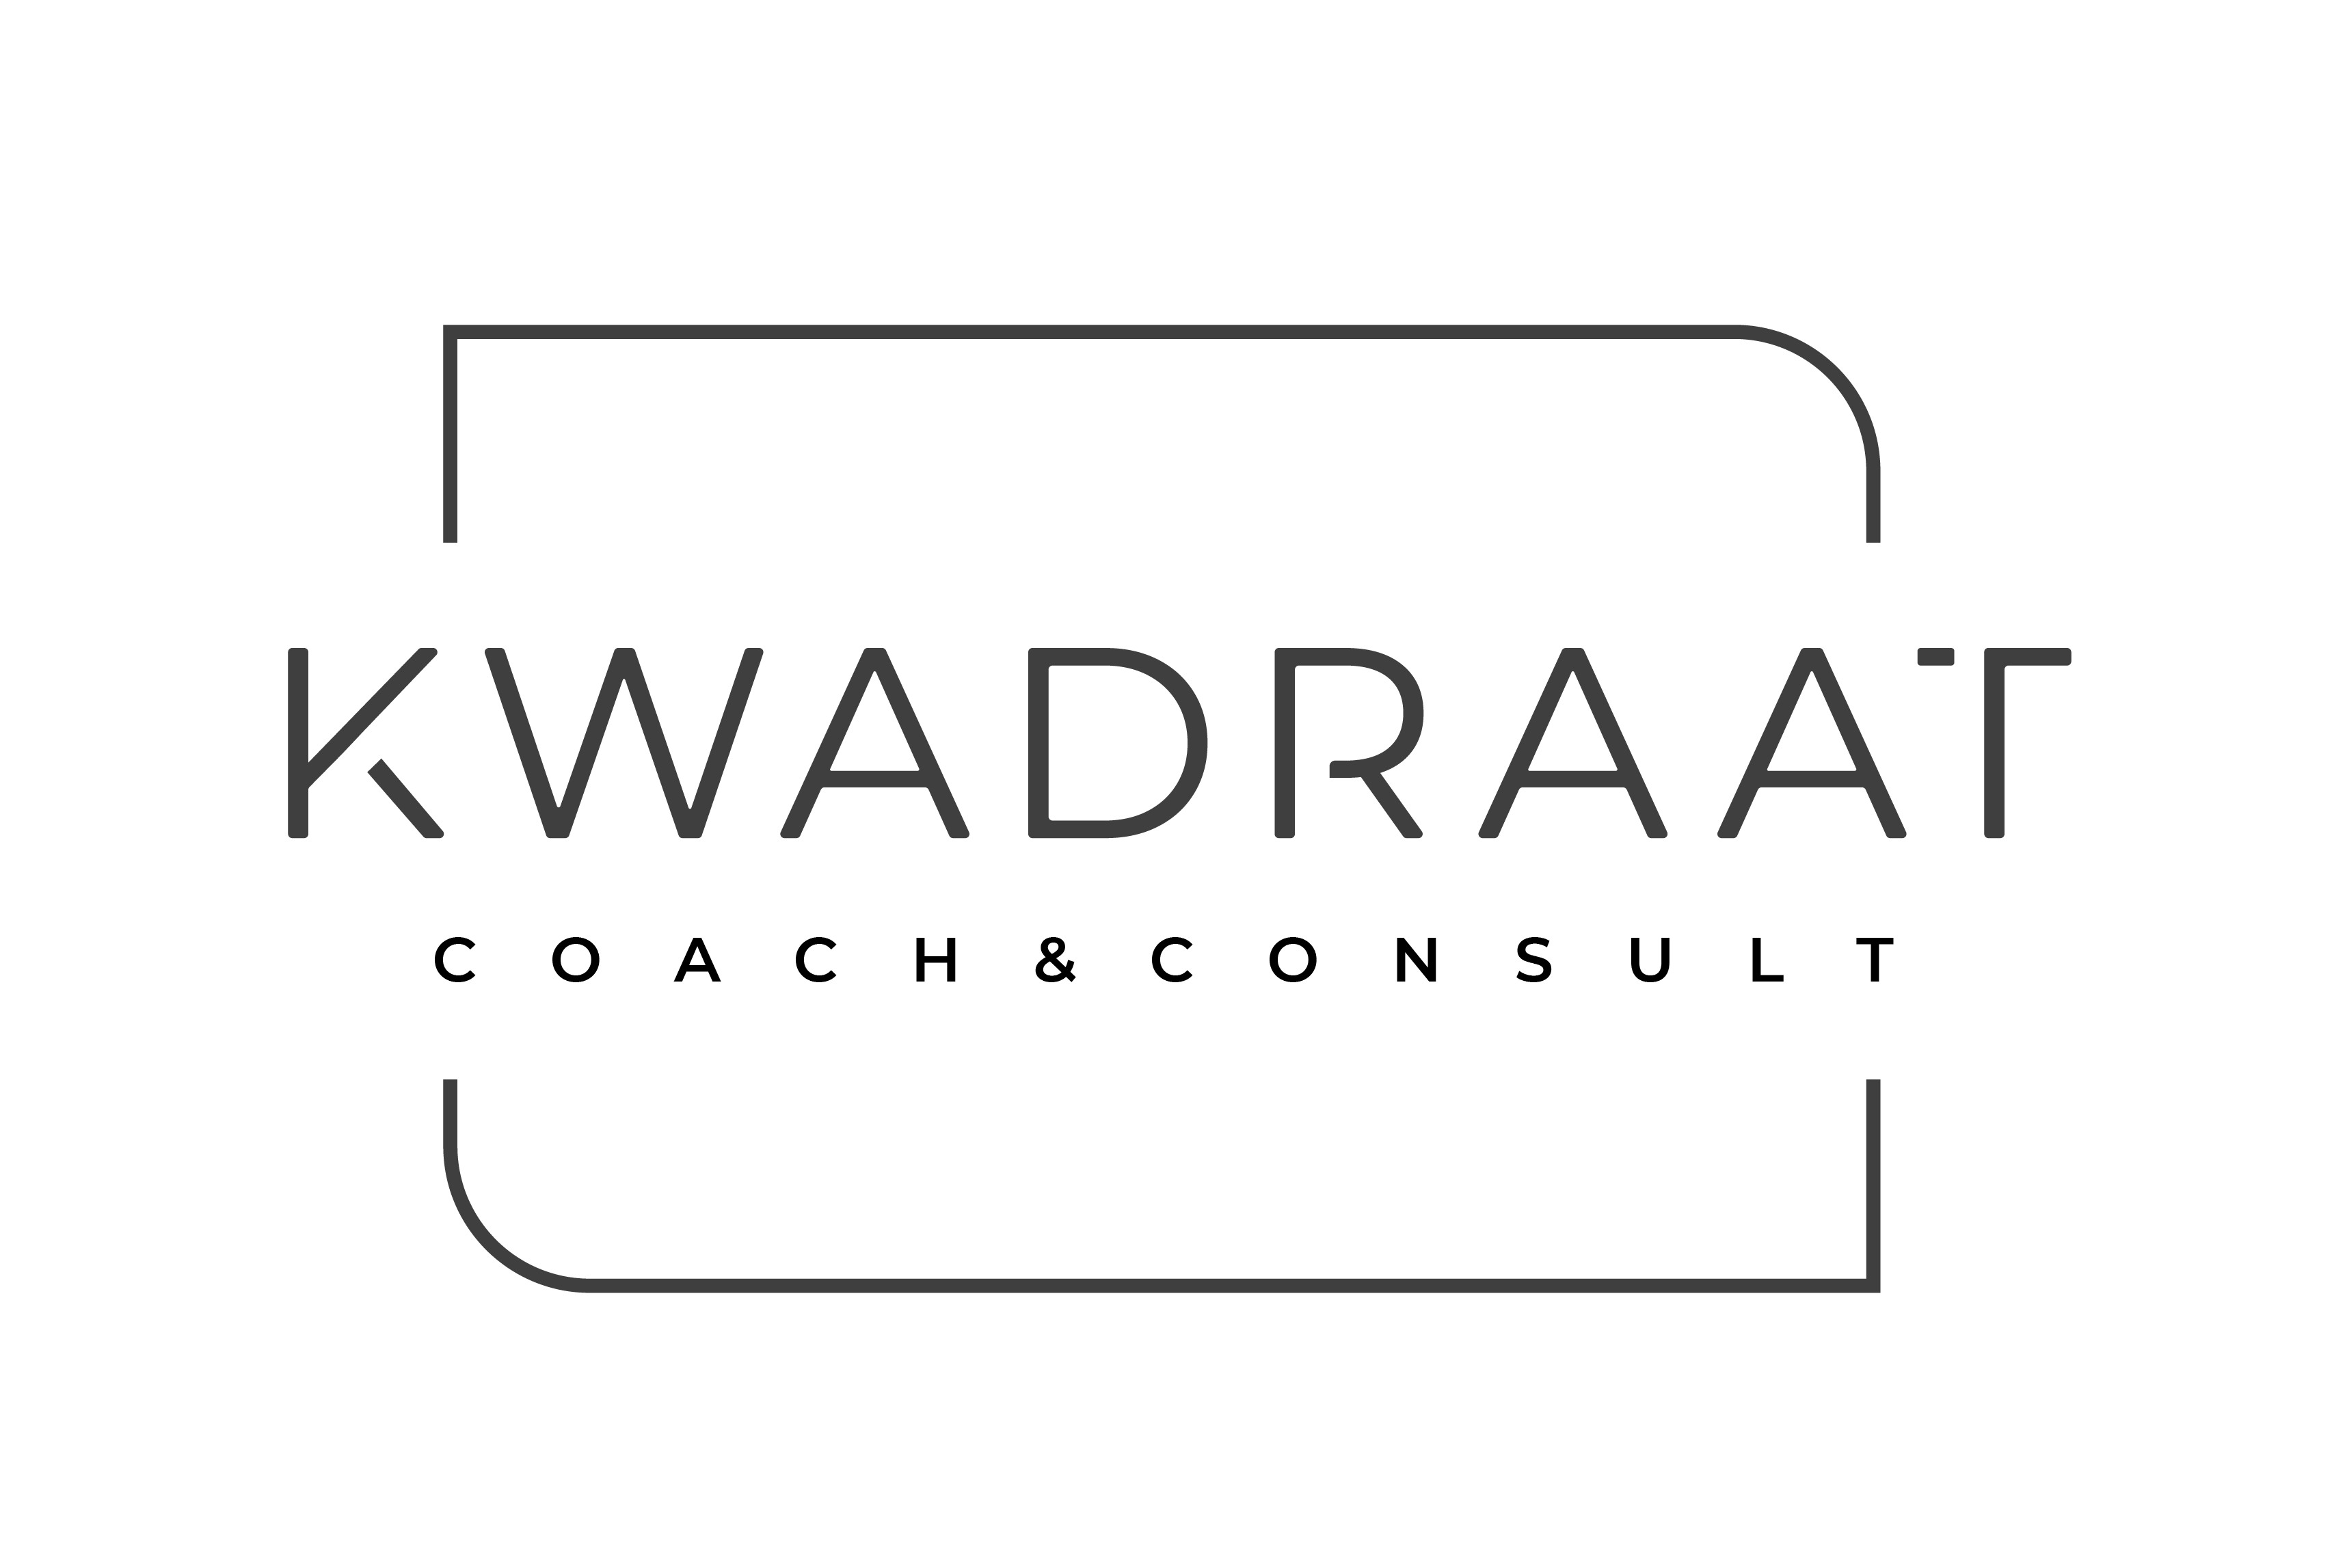 Logo Int Kwadraat